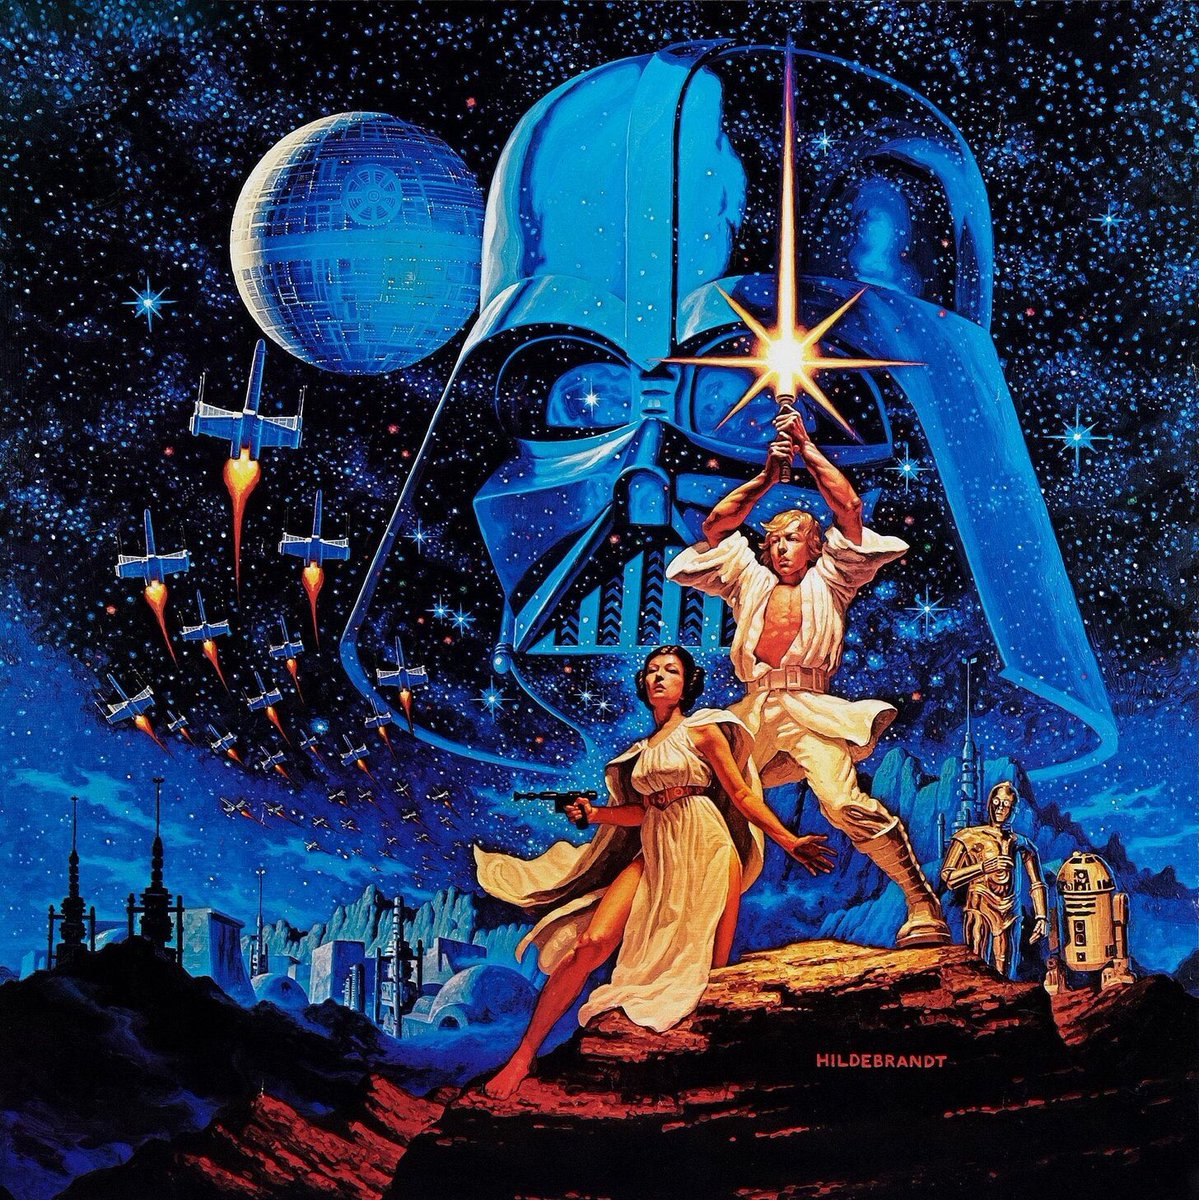 Long before I saw #StarWars, the Hildebrandts' poster transported me to long ago and far away. It's the single most beautiful, beguiling and evocative work of art ever created.